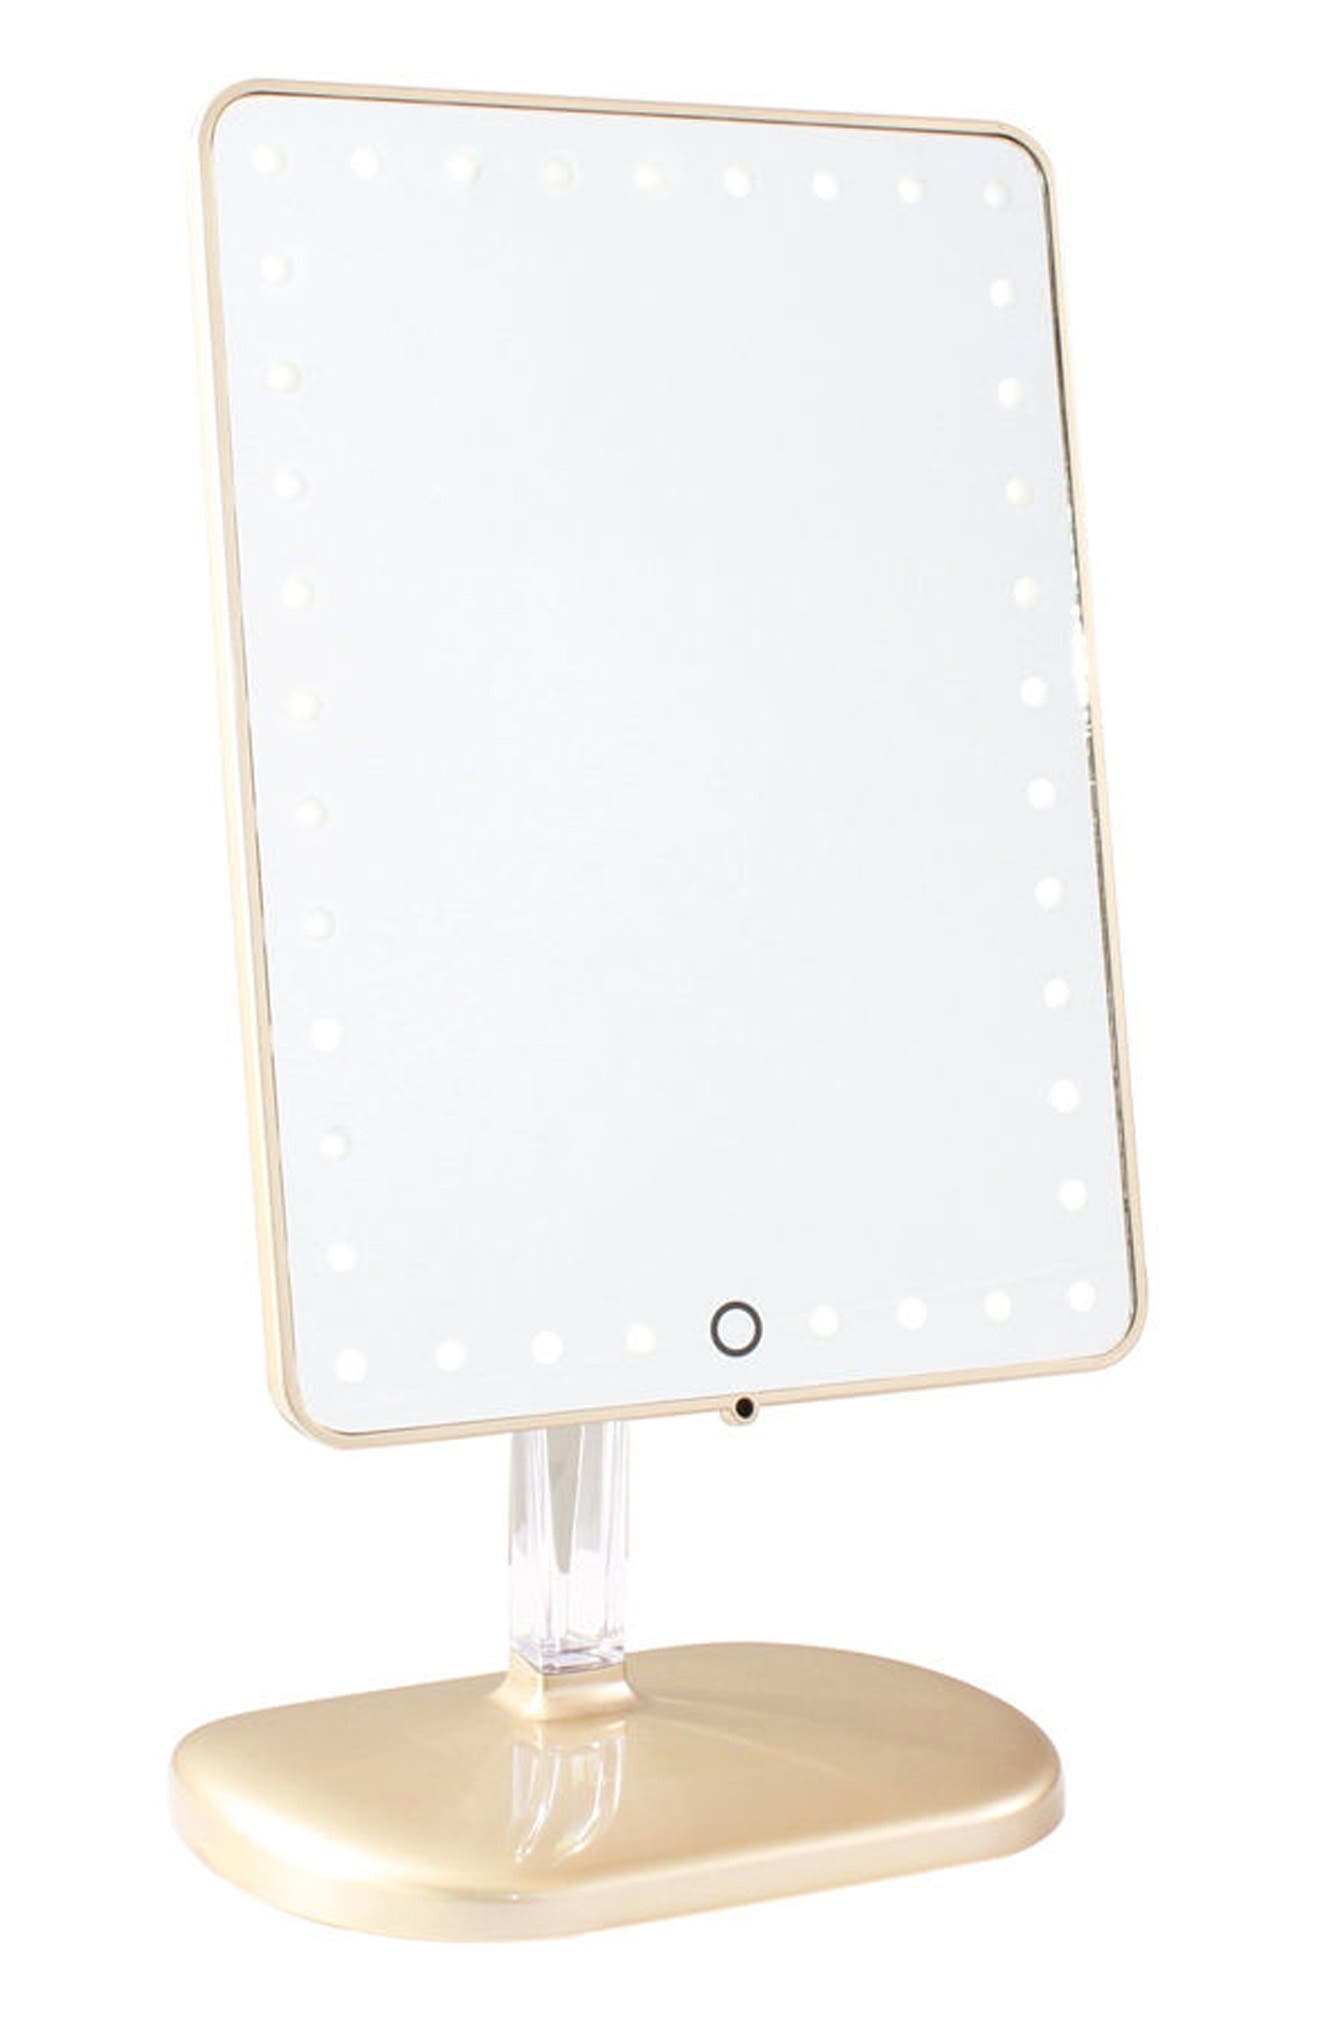 Bling Touch Pro LED Makeup Mirror with Bluetooth<sup>®</sup> Audio & Speakerphone,                         Main,                         color, Glossy Champagne